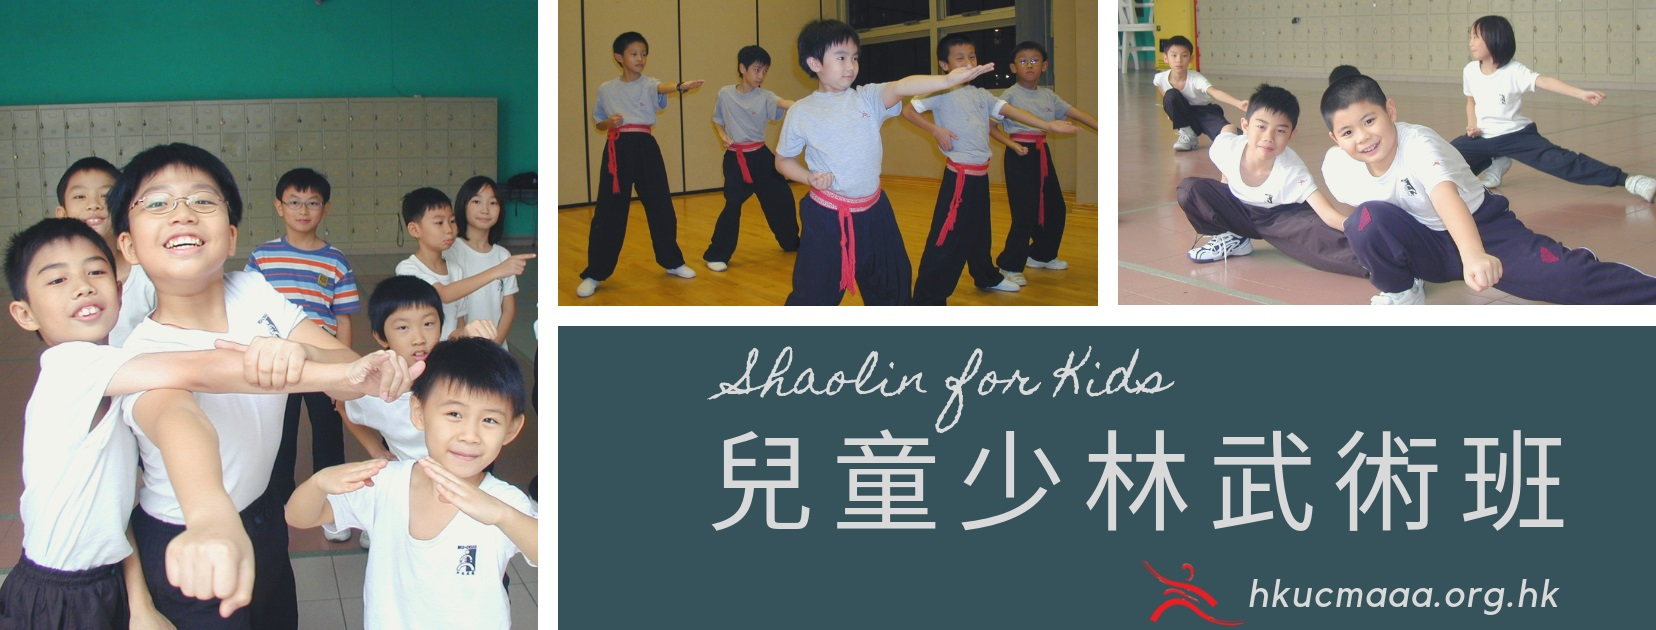 Shaolin for kids